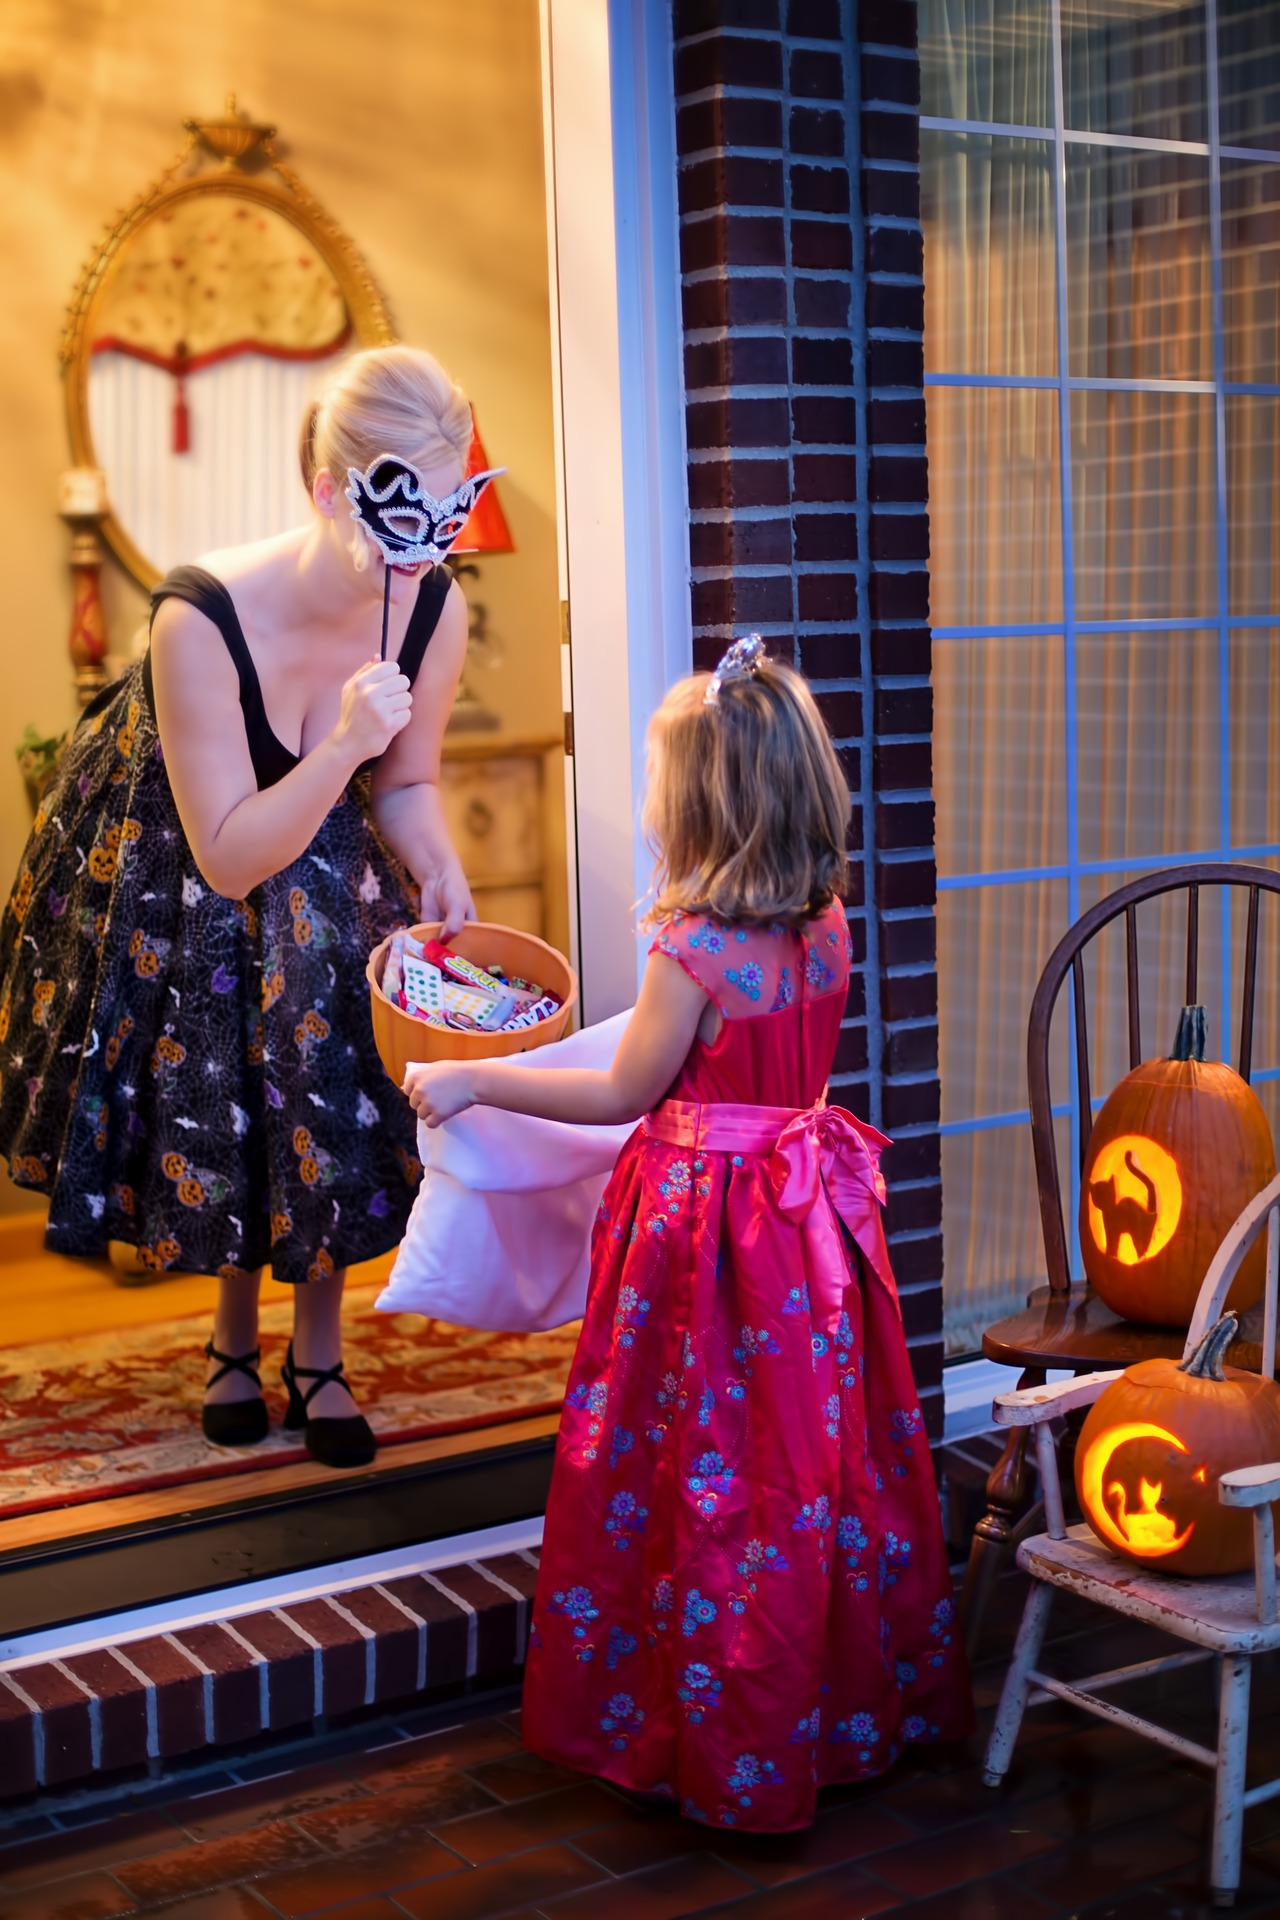 Trick-or-treat for a good cause. (Image c/o Pixabay)